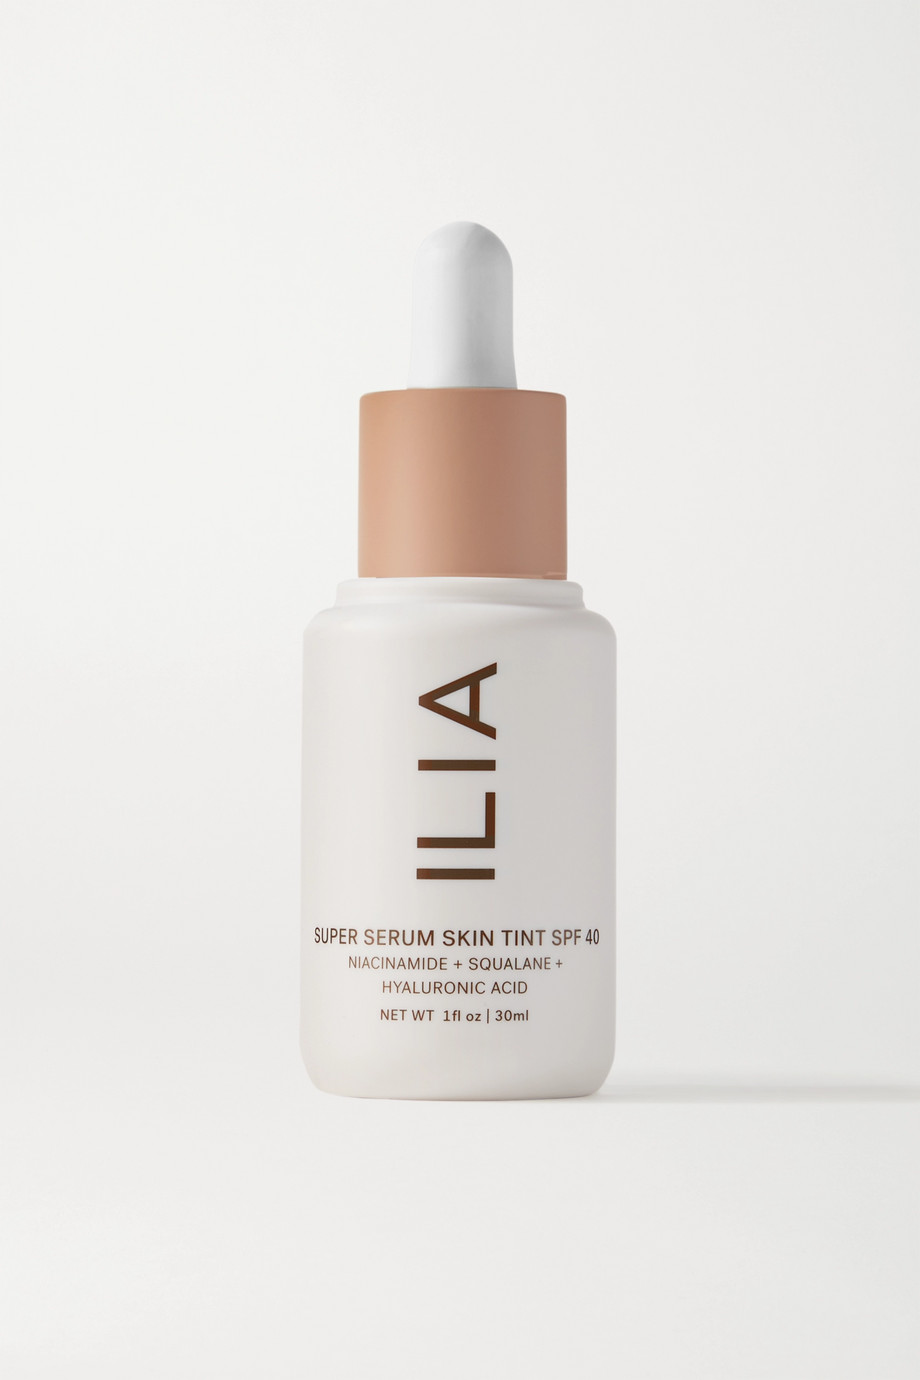 Ilia Super Serum Skin Tint SPF 40 - Diaz ST7, 30ml